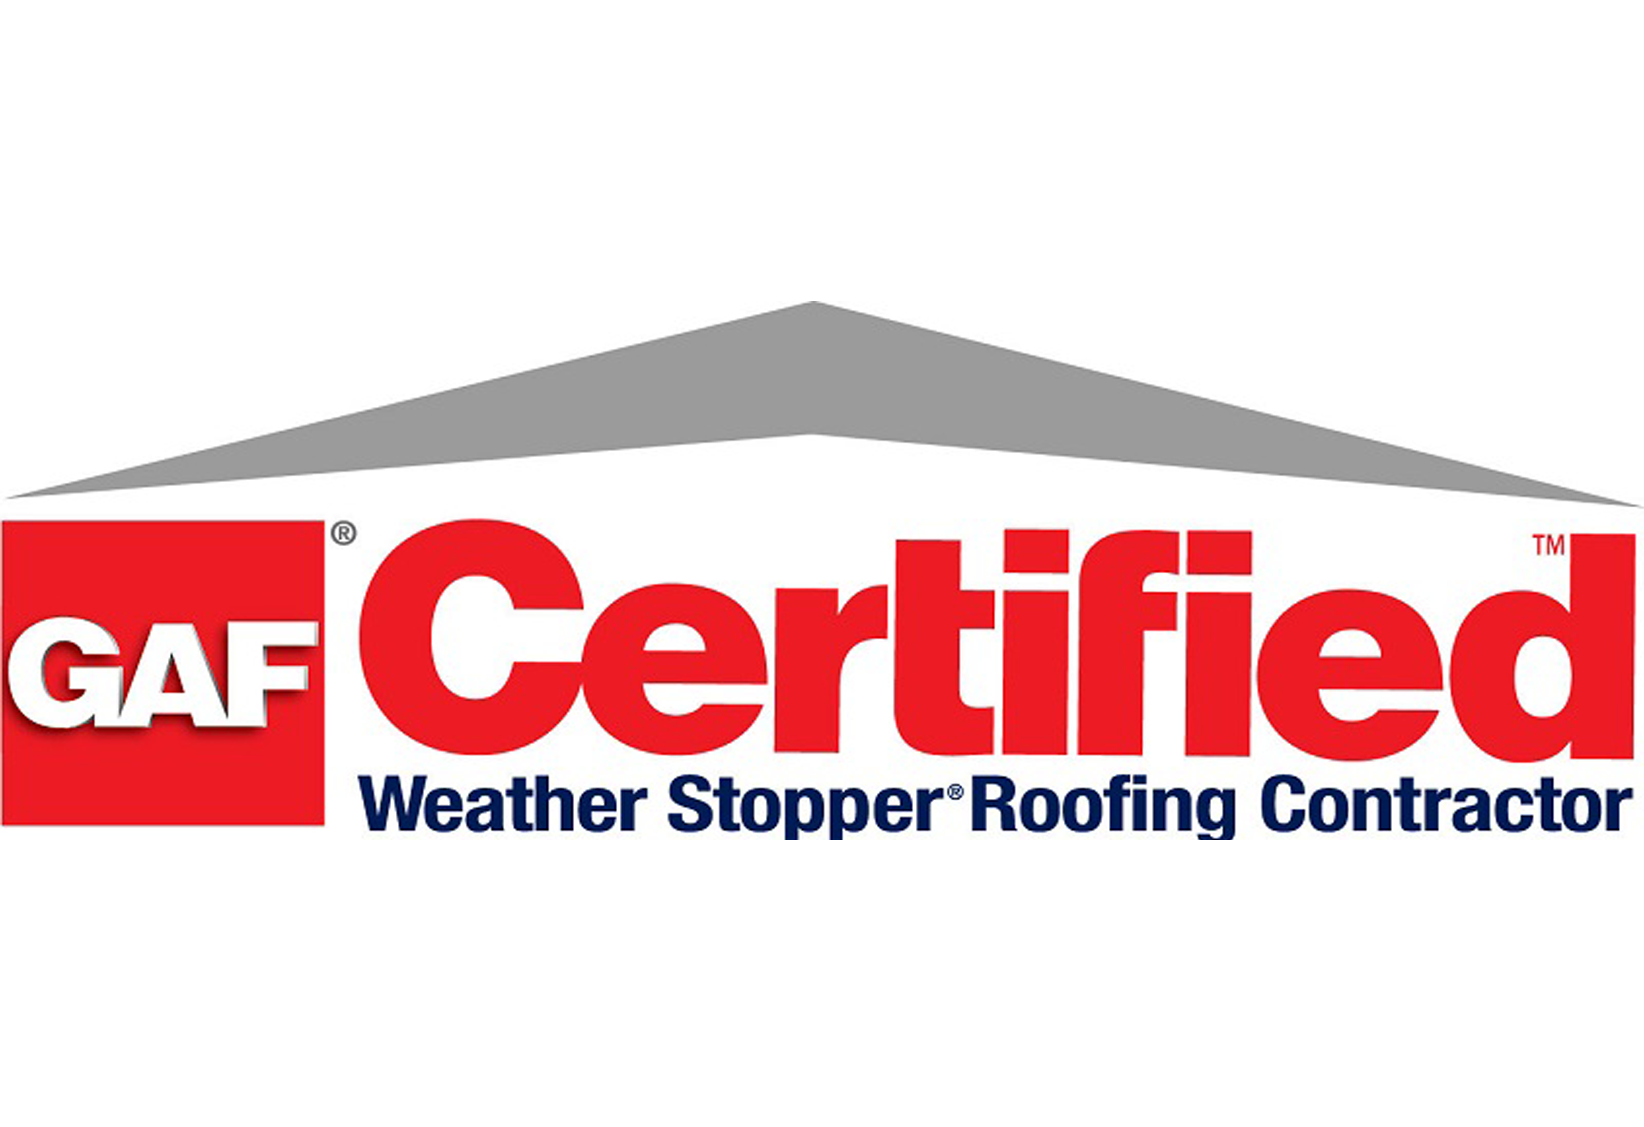 GAF Certified Weather Stopper